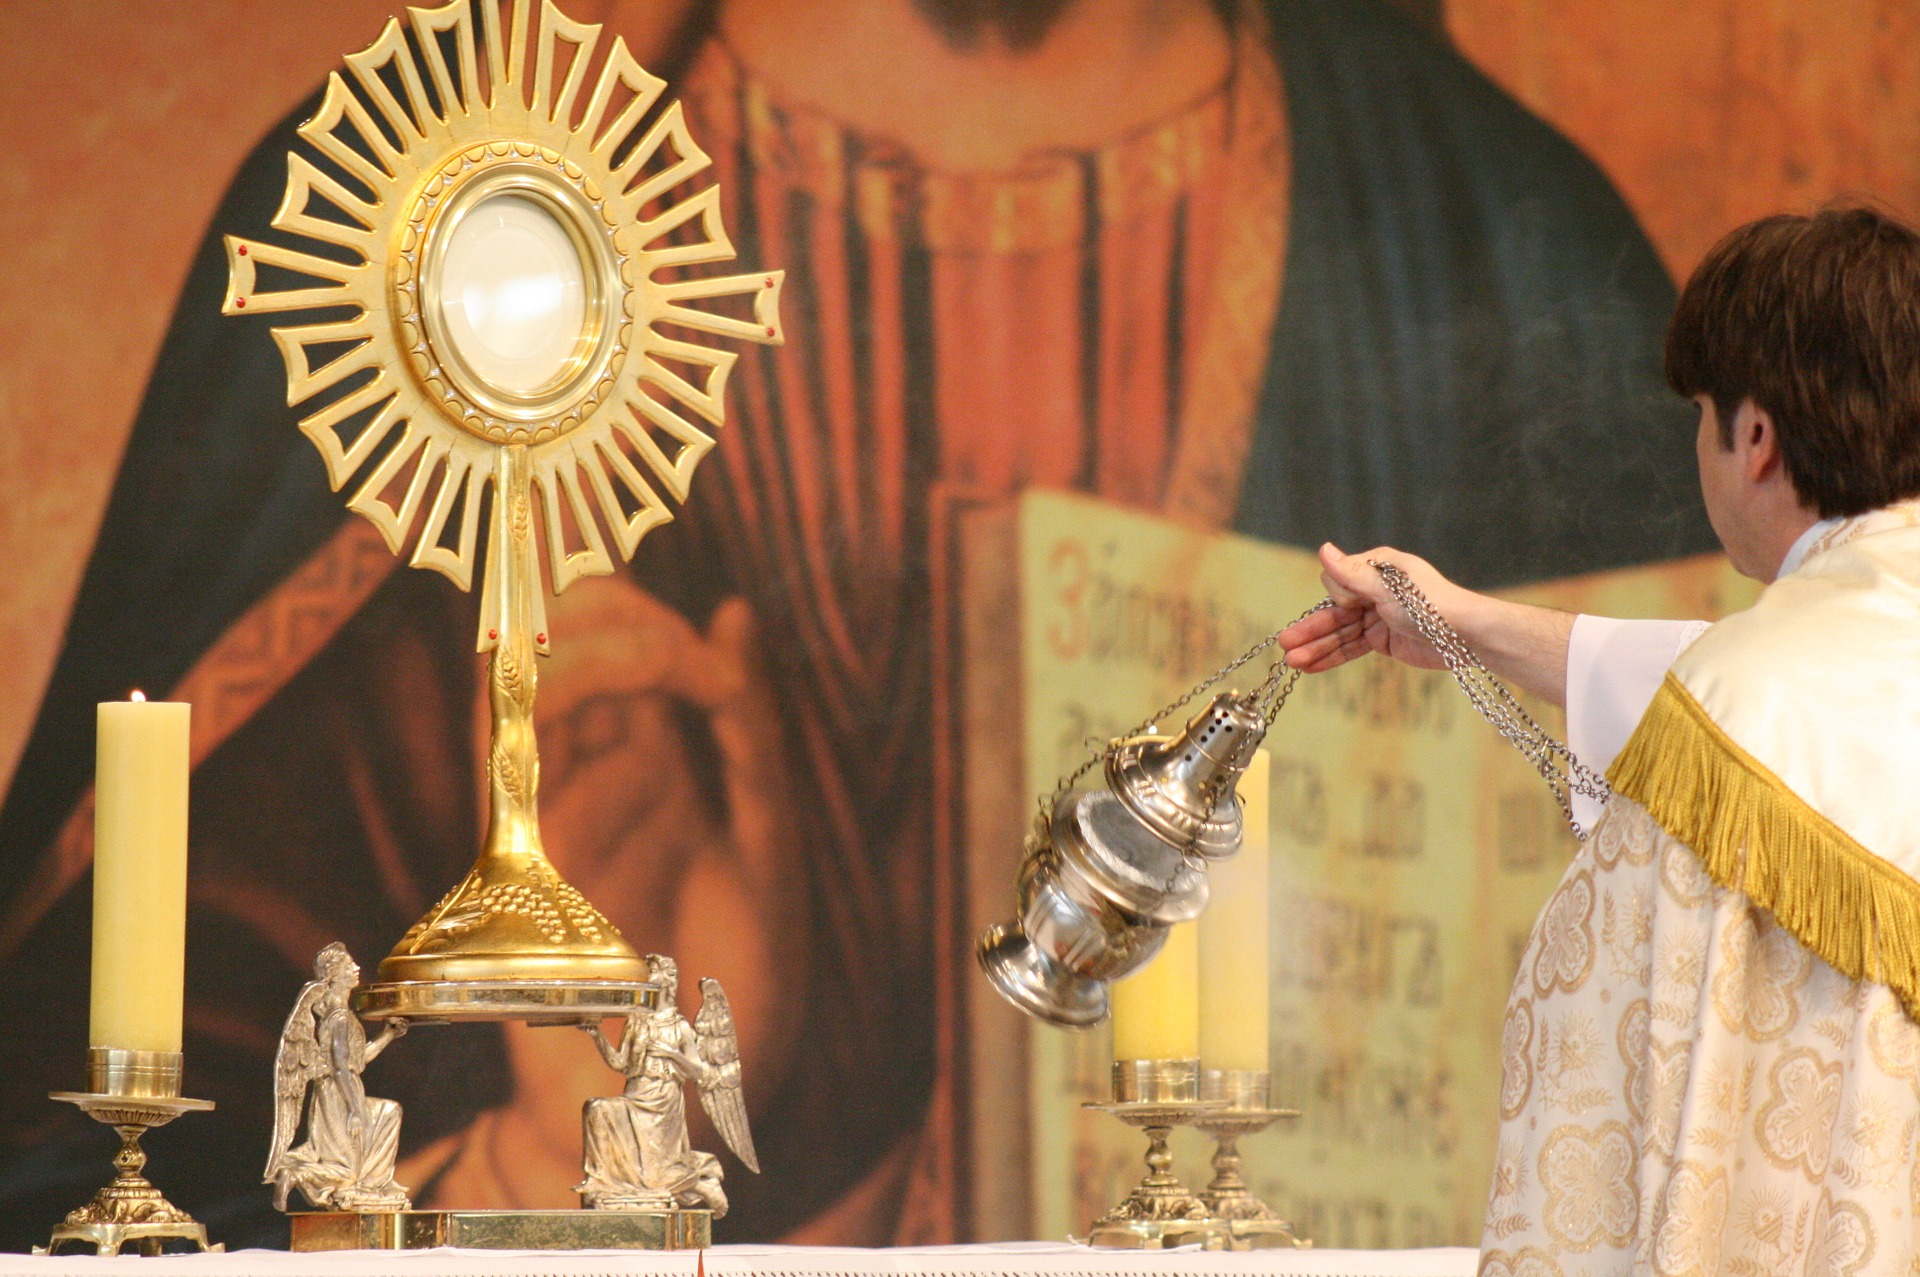 Priest swinging thurible during Adoration